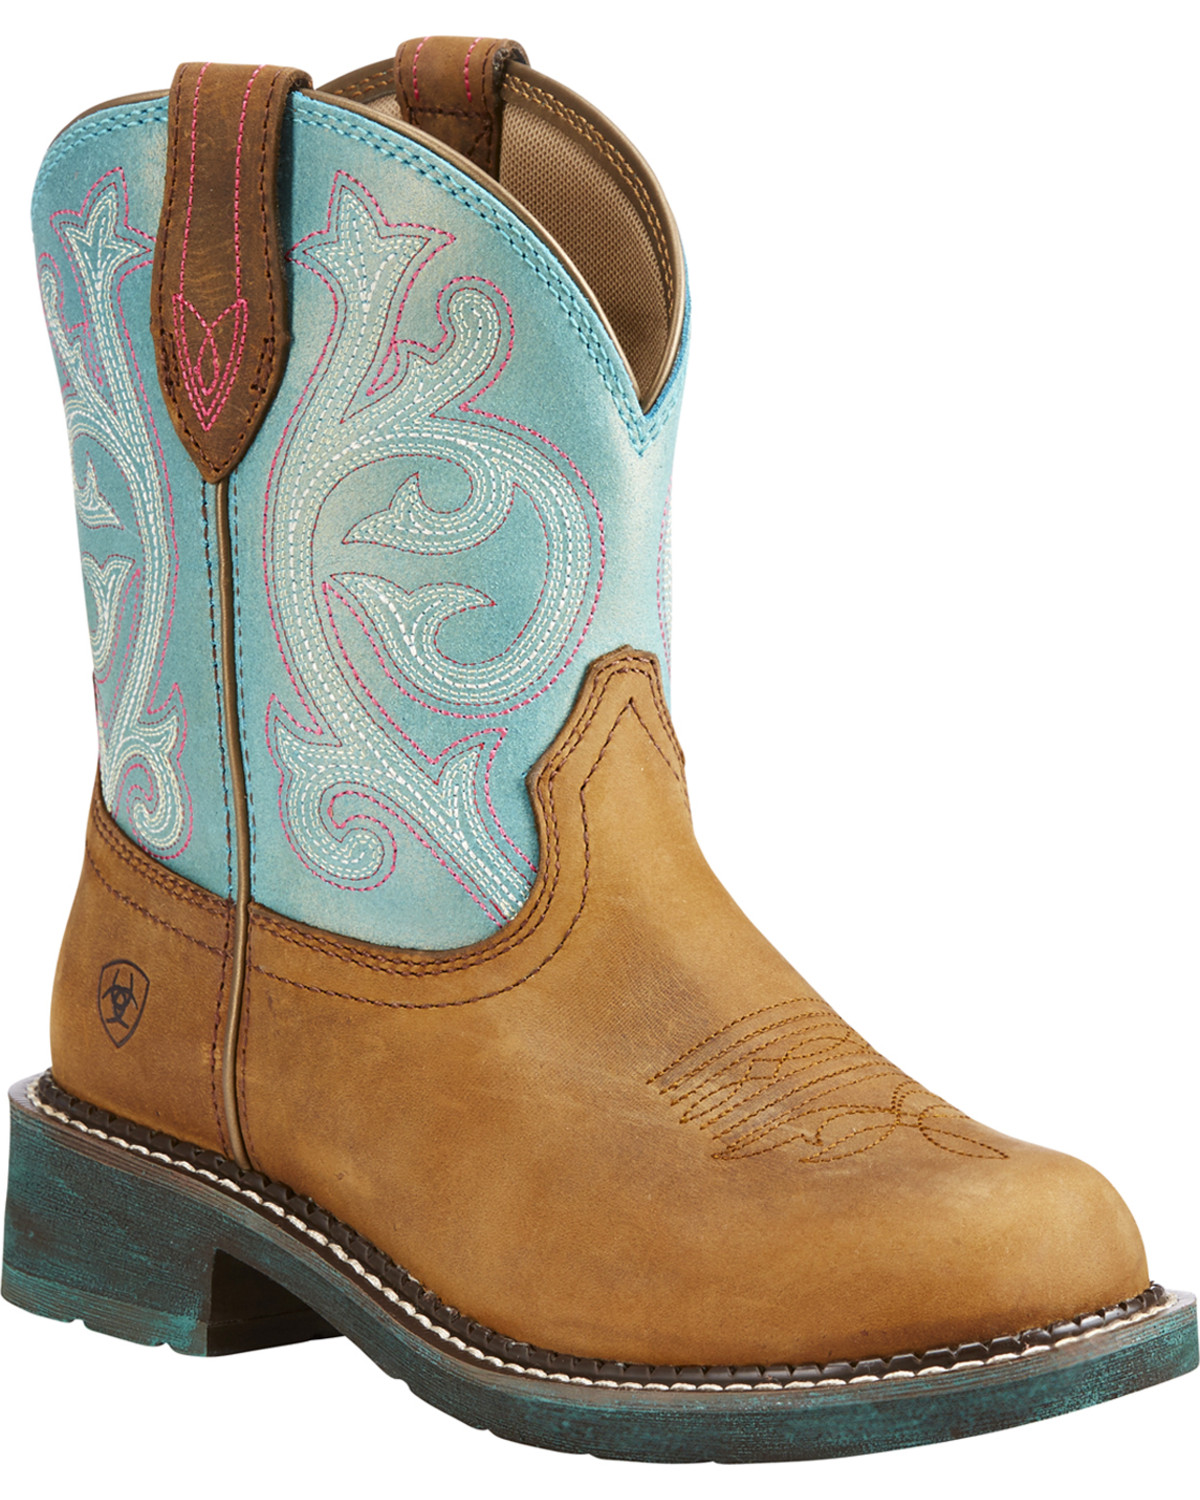 Ariat Boots Fatbaby